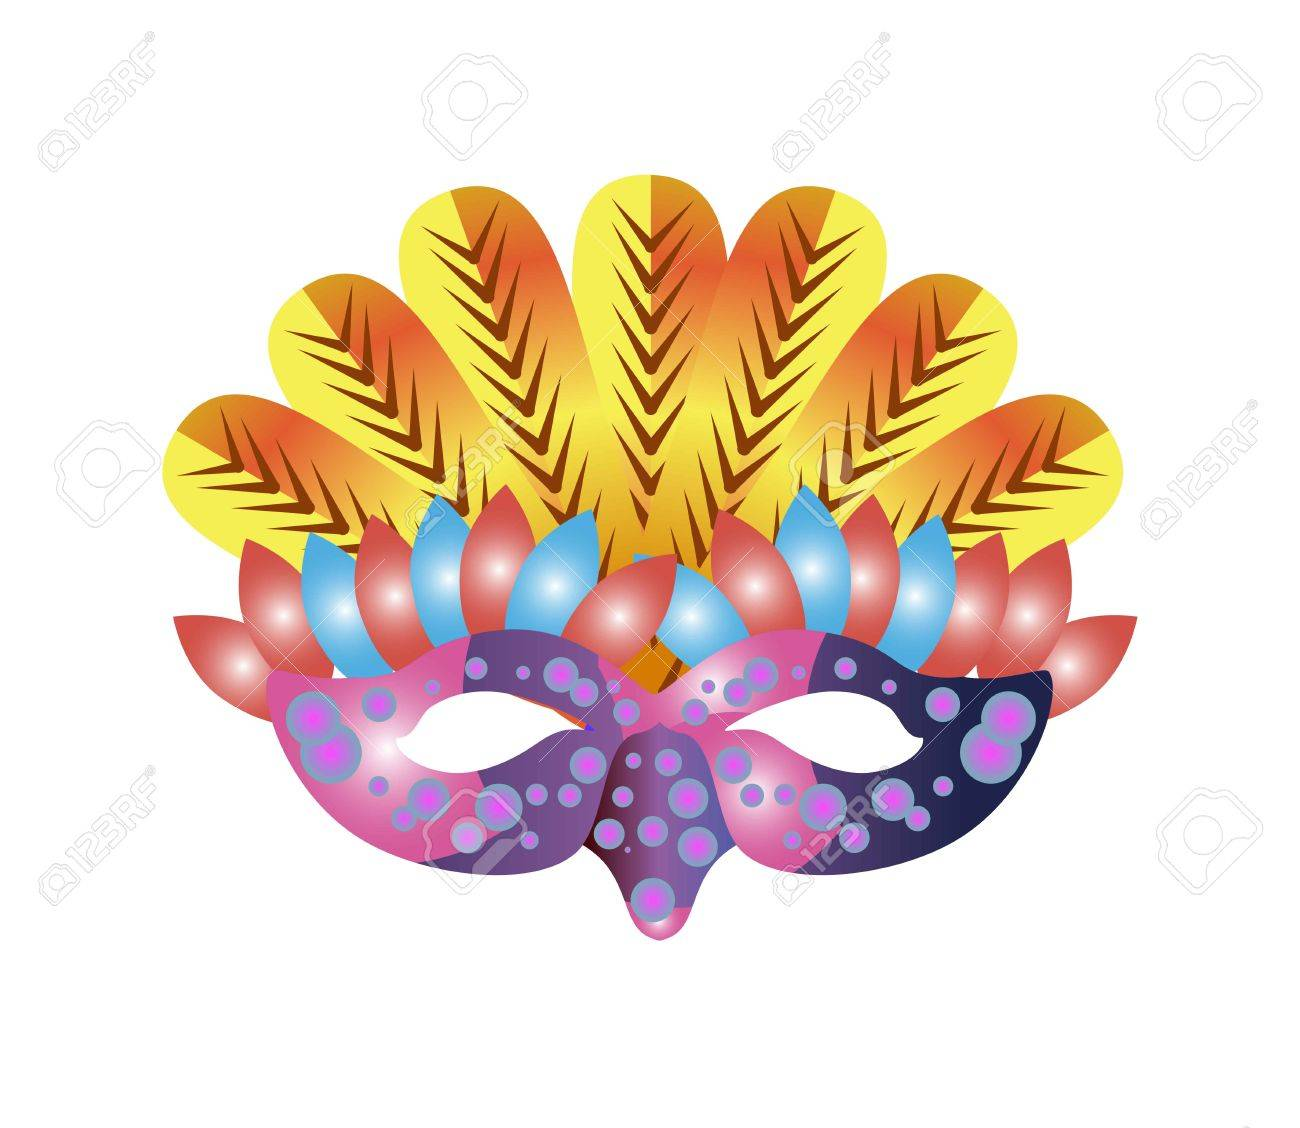 Carnival Mask For Venetian Masquerade Or Mardi Gras Festival Party Vector Illustration Of Isolated